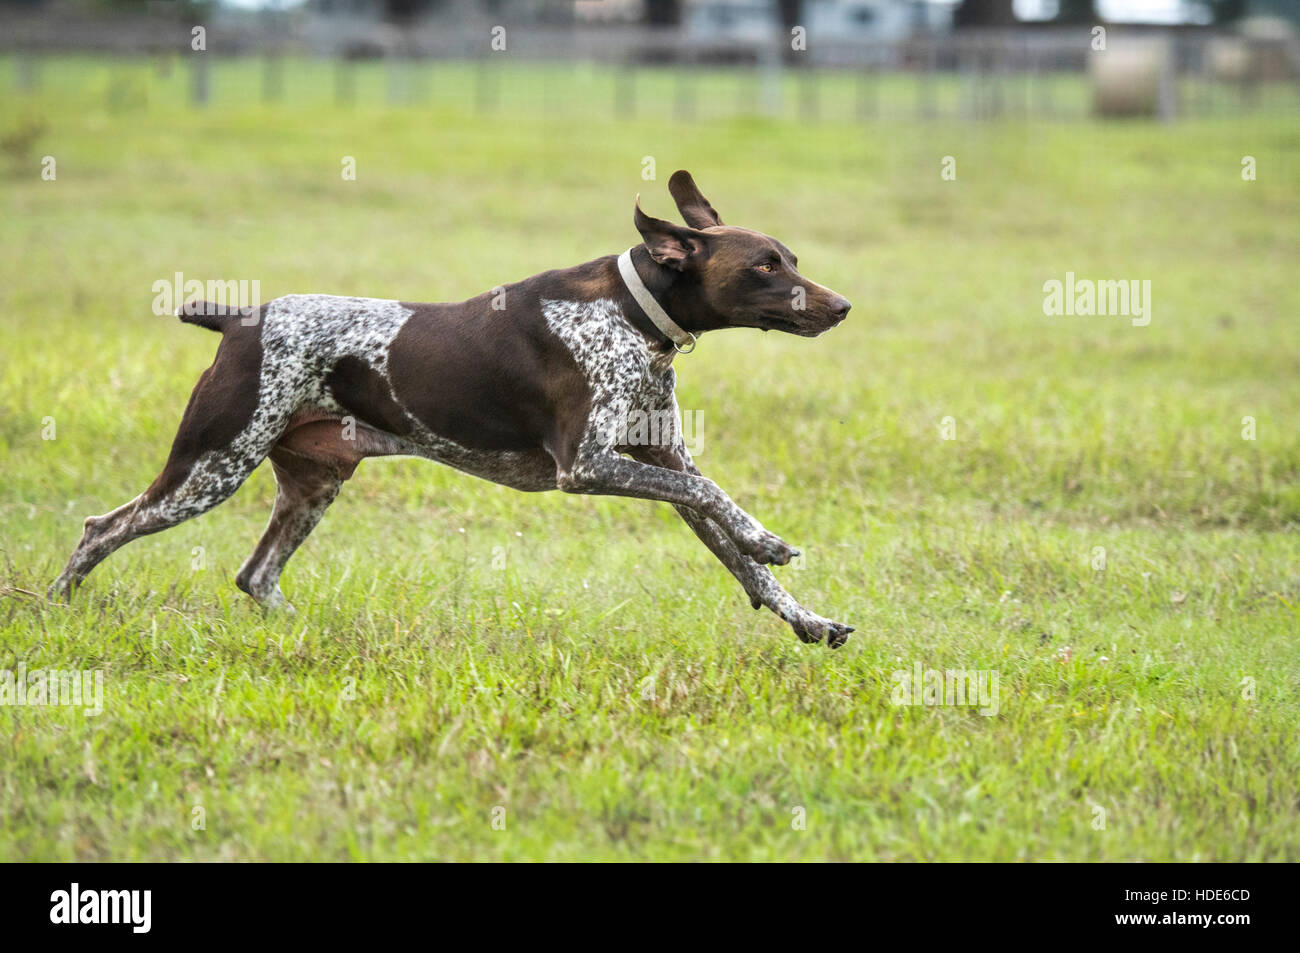 Grman Shorthaired Pointer running in grass - Stock Image